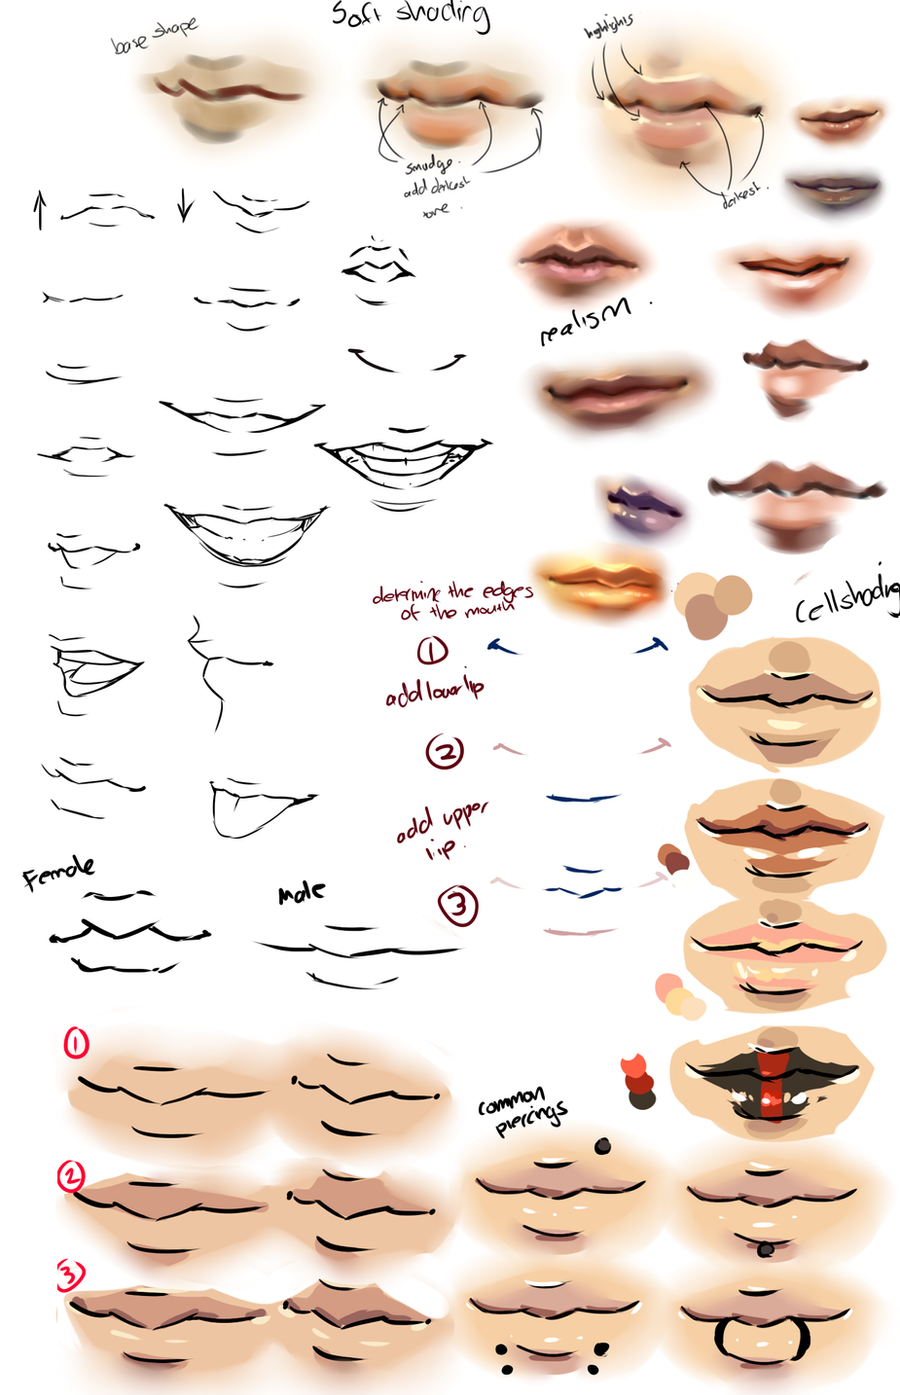 Moni158 58383 1524 Anime And Realism Lips Tips By